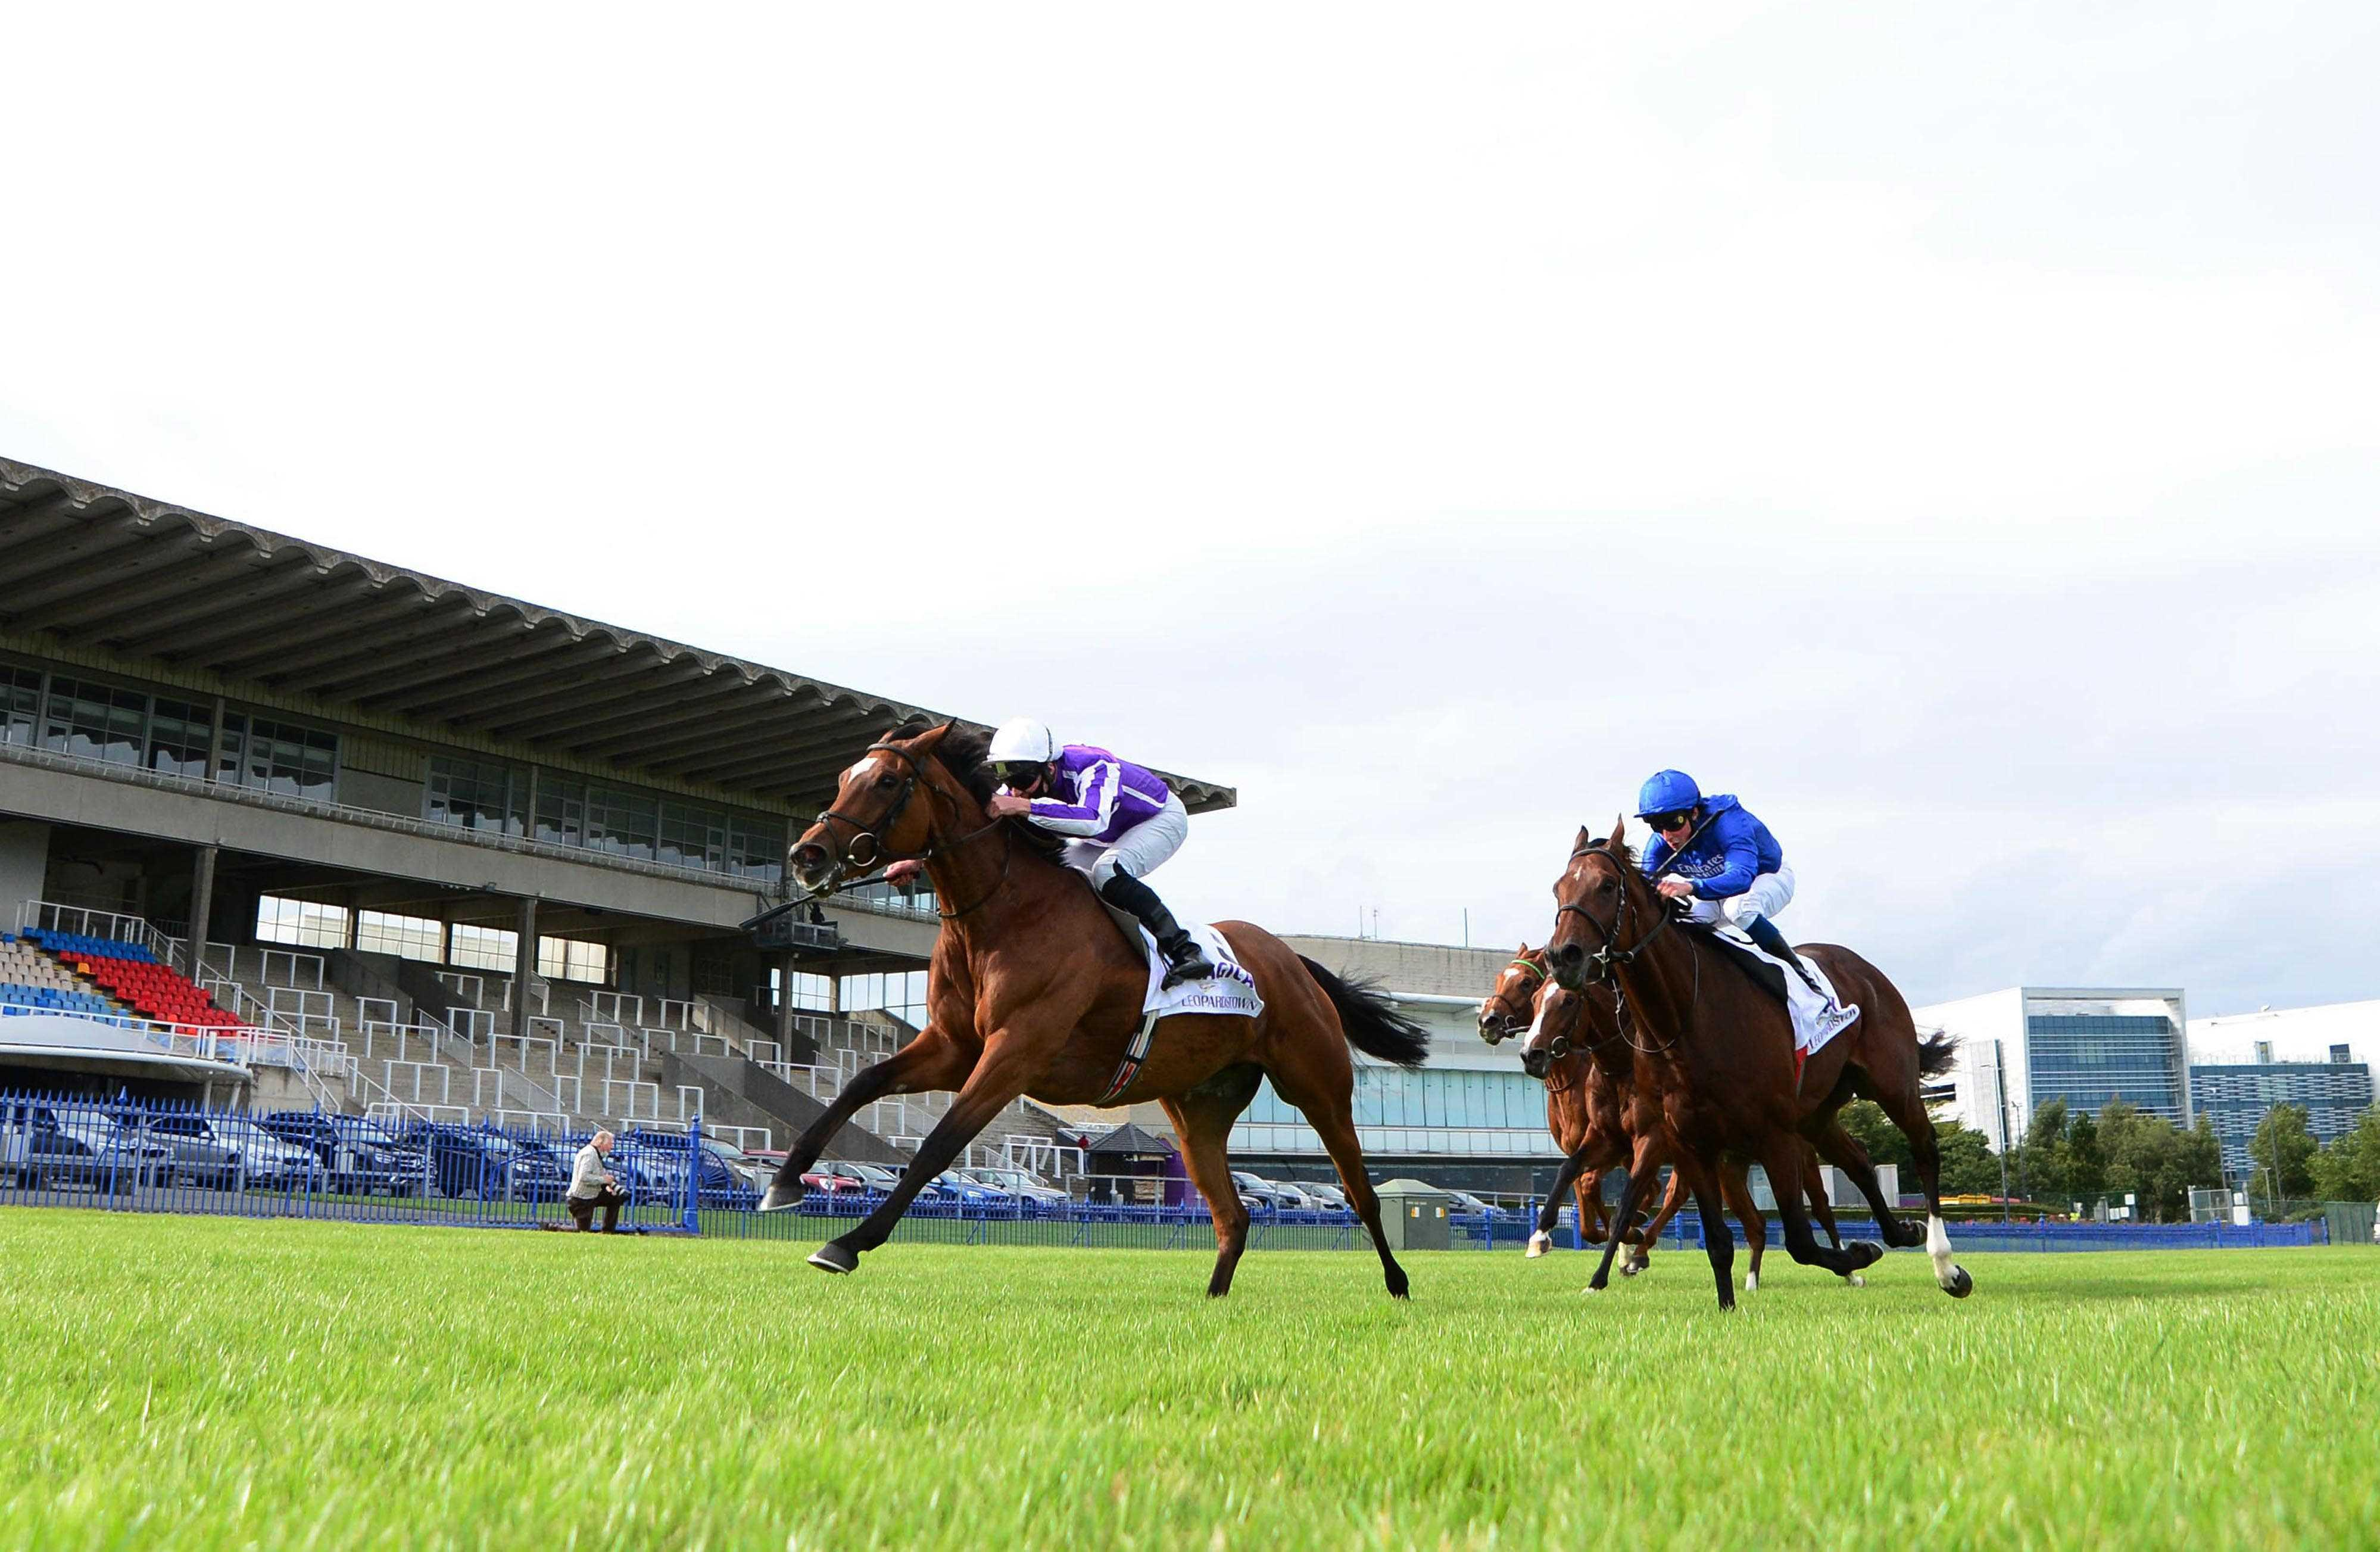 TIME WILL TELL: Head-to-head battle allows Magical to produce her very best